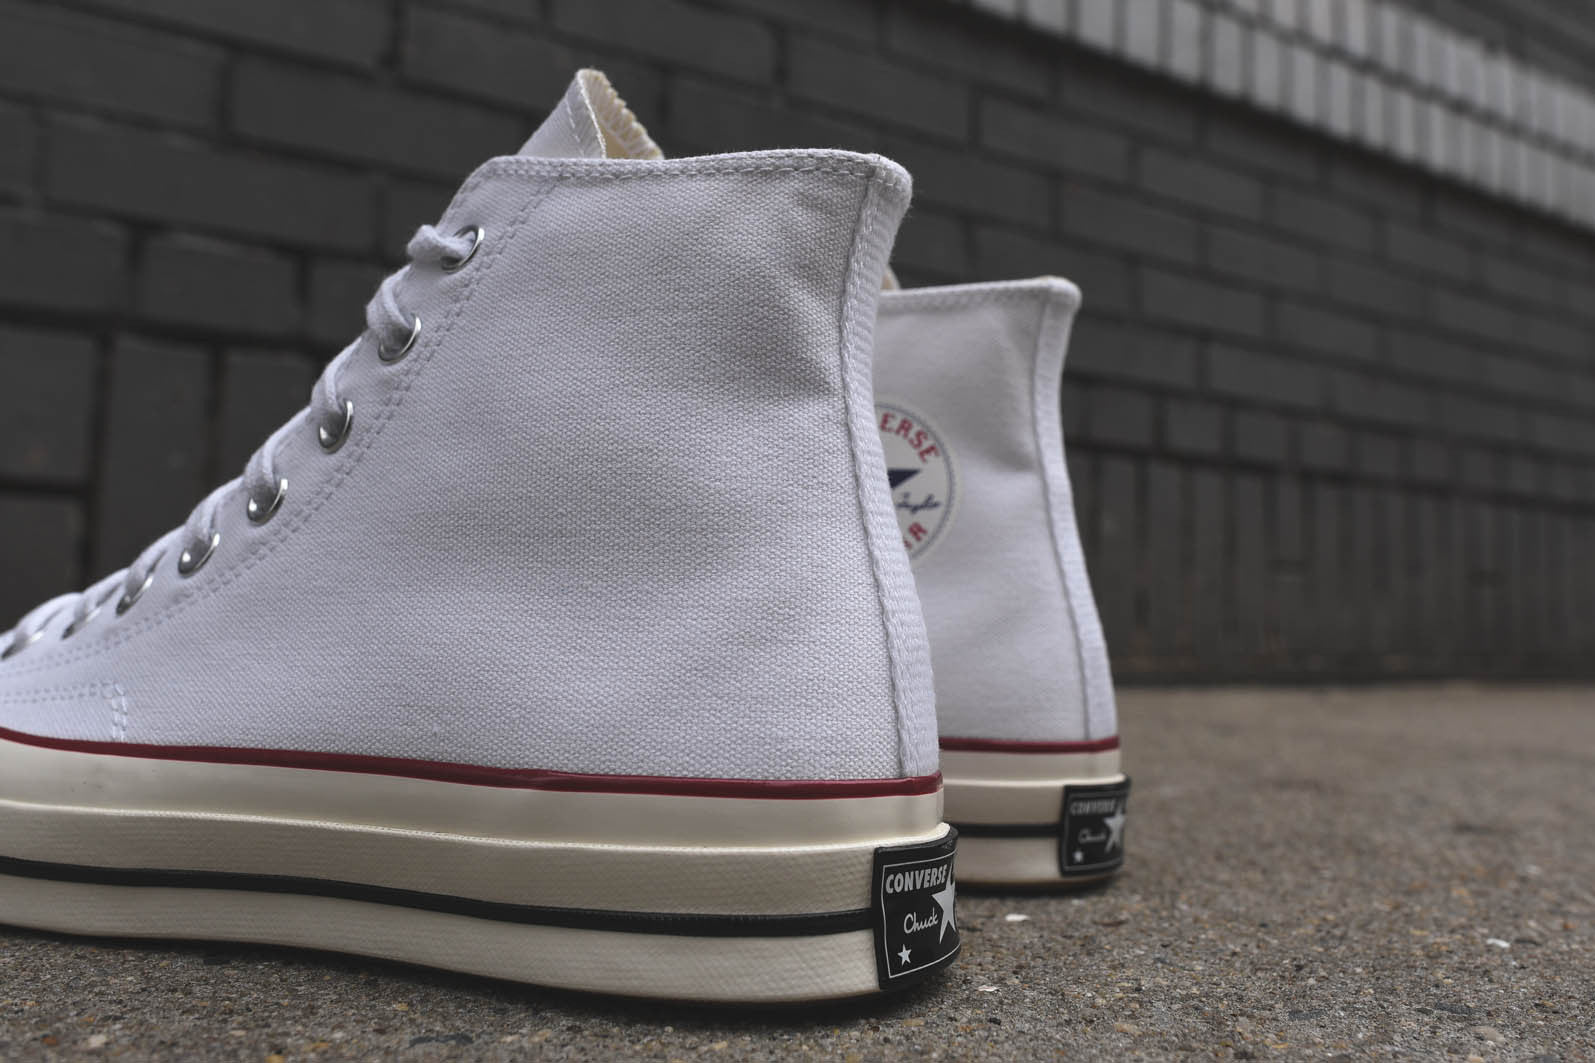 Converse Chuck Taylor All Star 1970 Hi - White